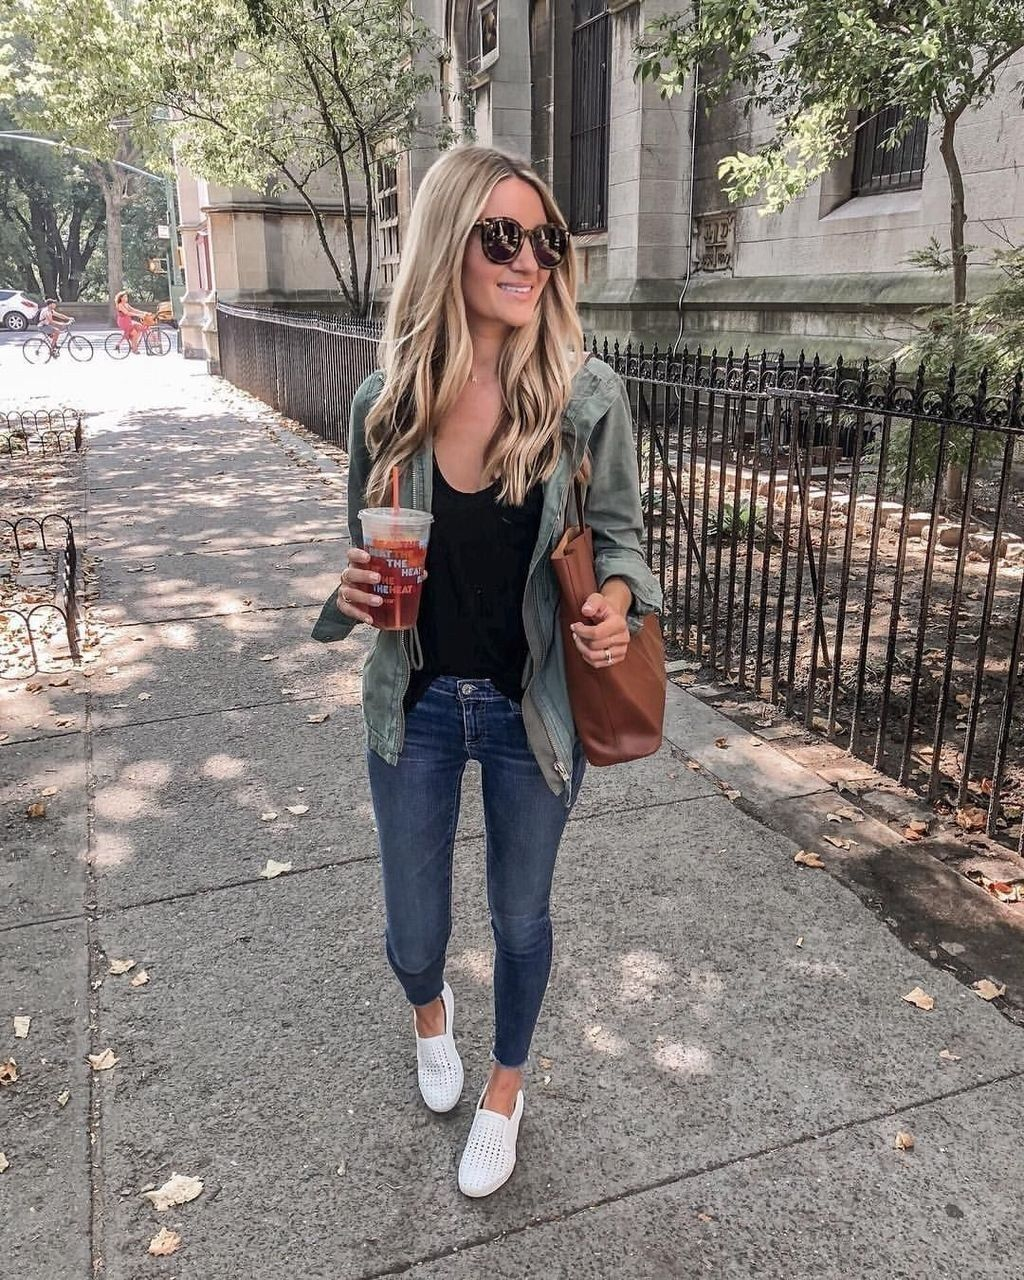 +28 Lovely Fall Outfits Ideas To Wear 2019  #maddyeuphoriaoutfits windsor, maddy euphoria outfits.Daily Fall Trends Ideas Wear. #maddyeuphoriaoutfits +28 Lovely Fall Outfits Ideas To Wear 2019  #maddyeuphoriaoutfits windsor, maddy euphoria outfits.Daily Fall Trends Ideas Wear. #maddyeuphoriaoutfits +28 Lovely Fall Outfits Ideas To Wear 2019  #maddyeuphoriaoutfits windsor, maddy euphoria outfits.Daily Fall Trends Ideas Wear. #maddyeuphoriaoutfits +28 Lovely Fall Outfits Ideas To Wear 2019  #maddy #maddyeuphoriaoutfits